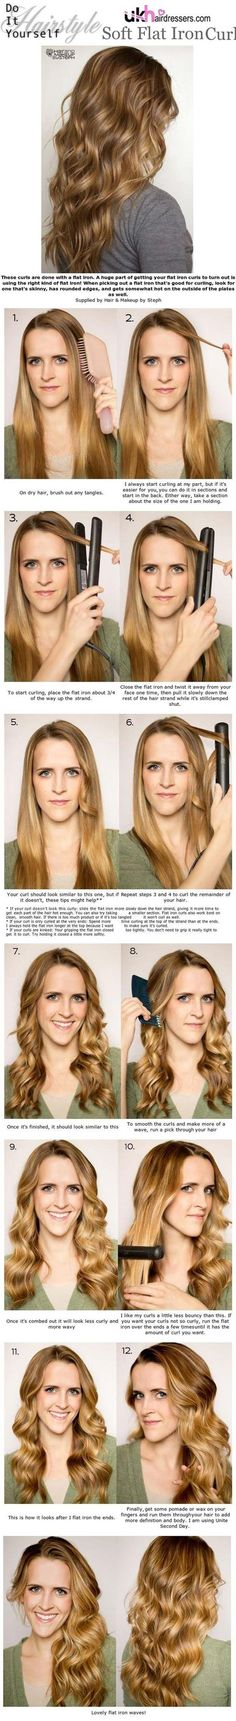 Cool Hairstyles You Can Do With Your Flat Iron - Soft Flat Iron Curls - Easy Step By Step Tutorials And Hair Tips Every Girl Should Know To Get The Style And Look They Want Using A Flat Iron. Videos and Image How To's That Provide Simple Tips and Tricks F (Should Try Beauty Products)